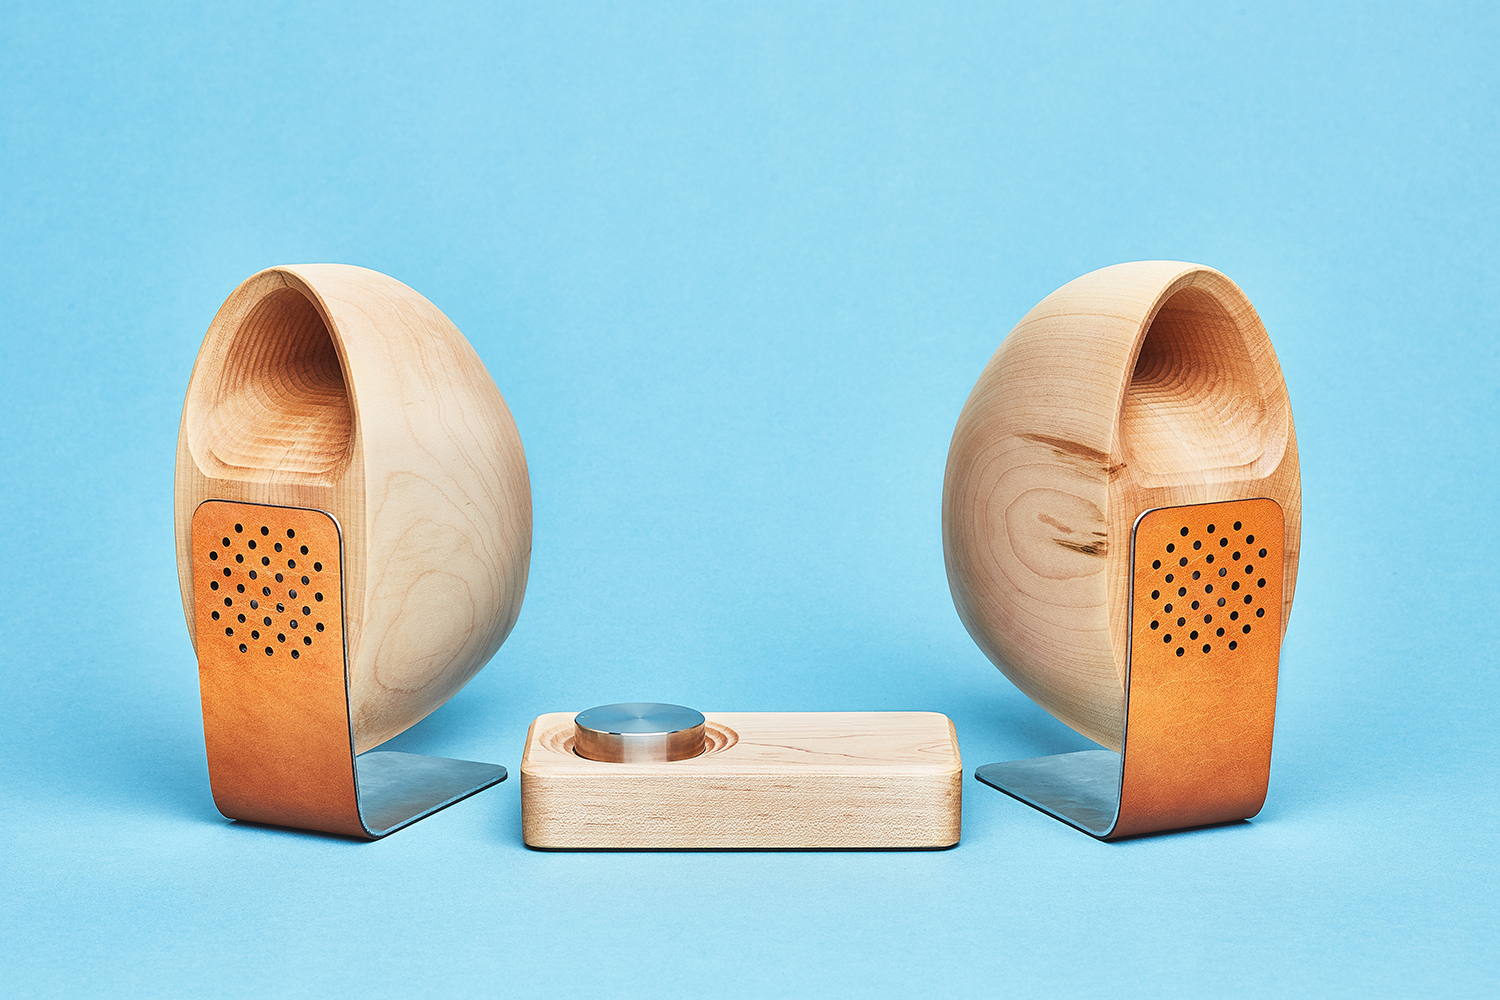 grovemade-wooden-speakers-09